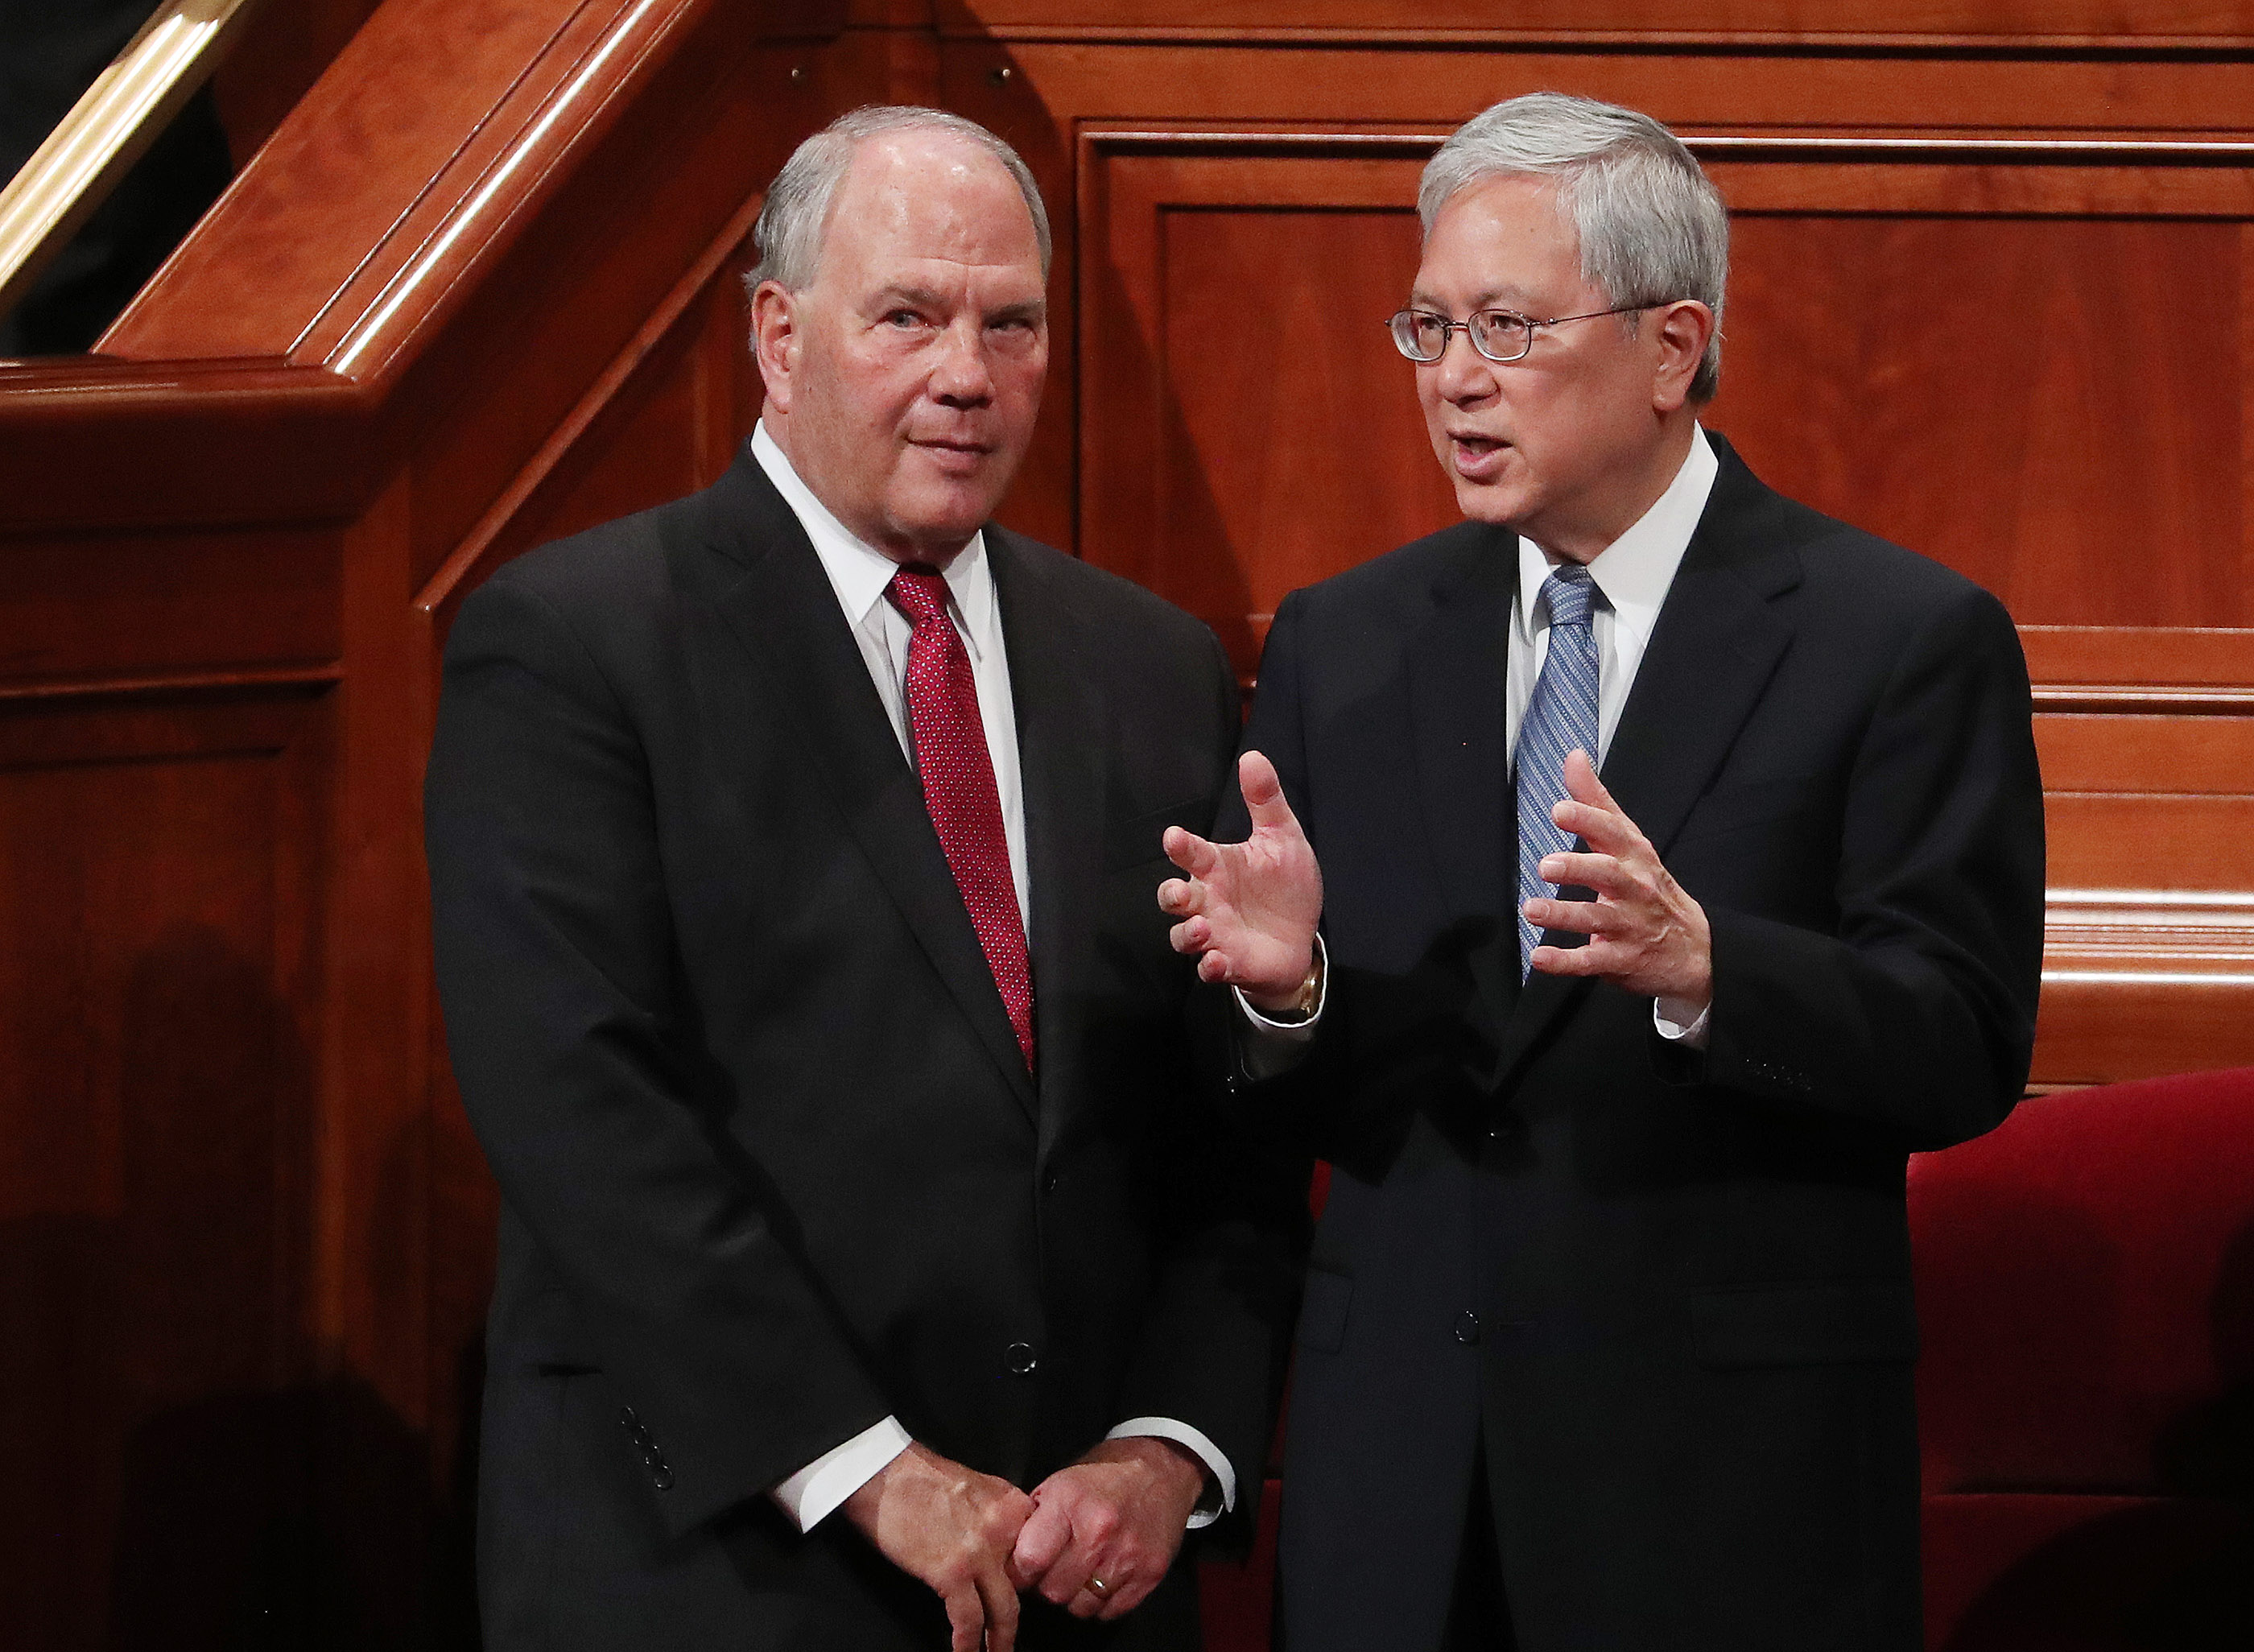 Elder Ronald A. Rasband and Elder Gerrit W. Gong of The Church of Jesus Christ of Latter-day Saints' Quorum of the Twelve Apostles speak prior to the 189th Annual General Conference of The Church of Jesus Christ of Latter-day Saints in Salt Lake City on Saturday, April 6, 2019.